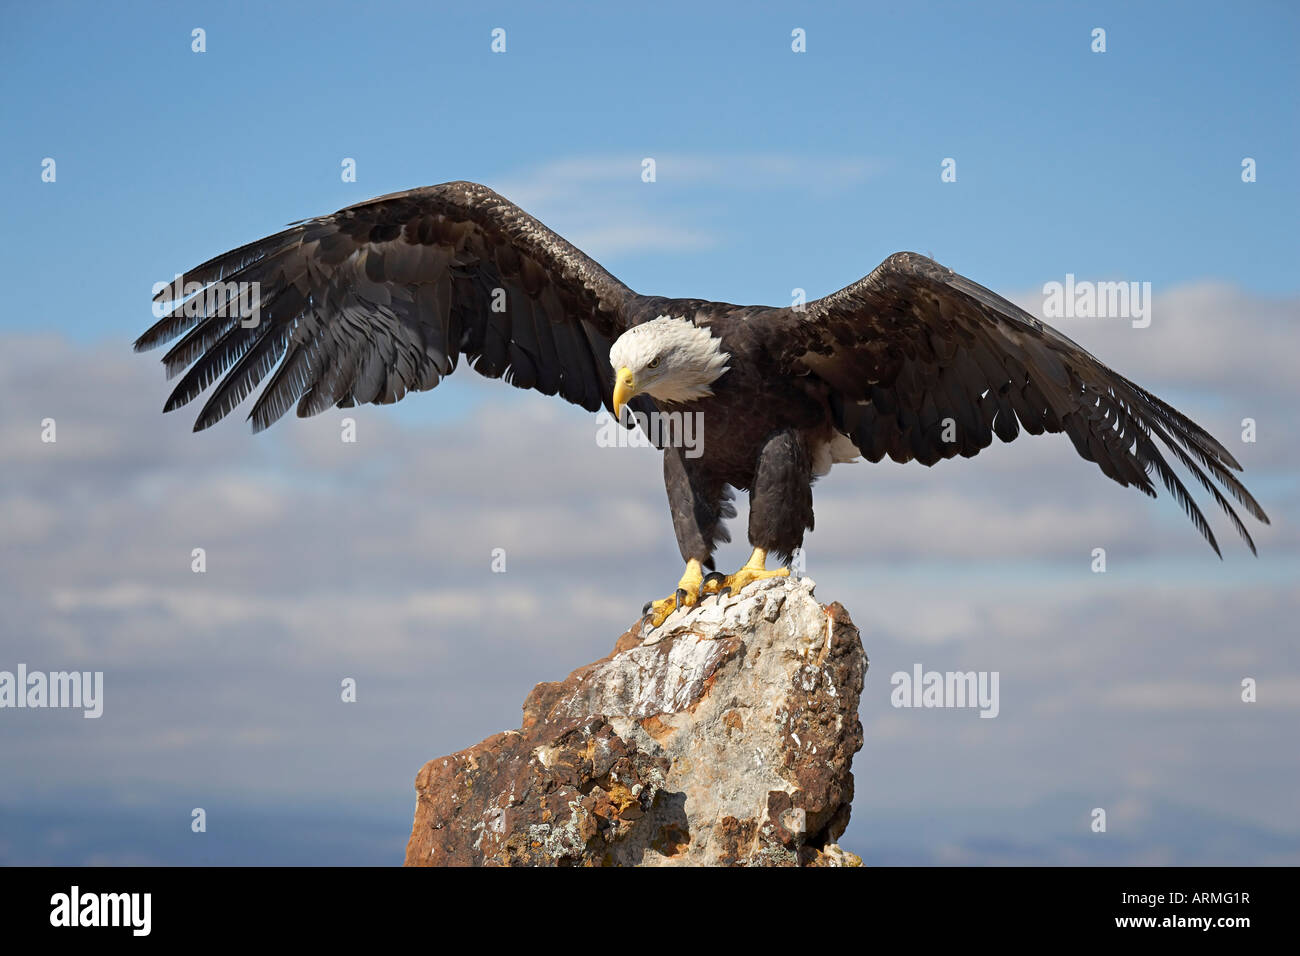 Bald eagle (Haliaeetus leucocephalus) perched with spread wings, Boulder County, Colorado, USA, North America - Stock Image